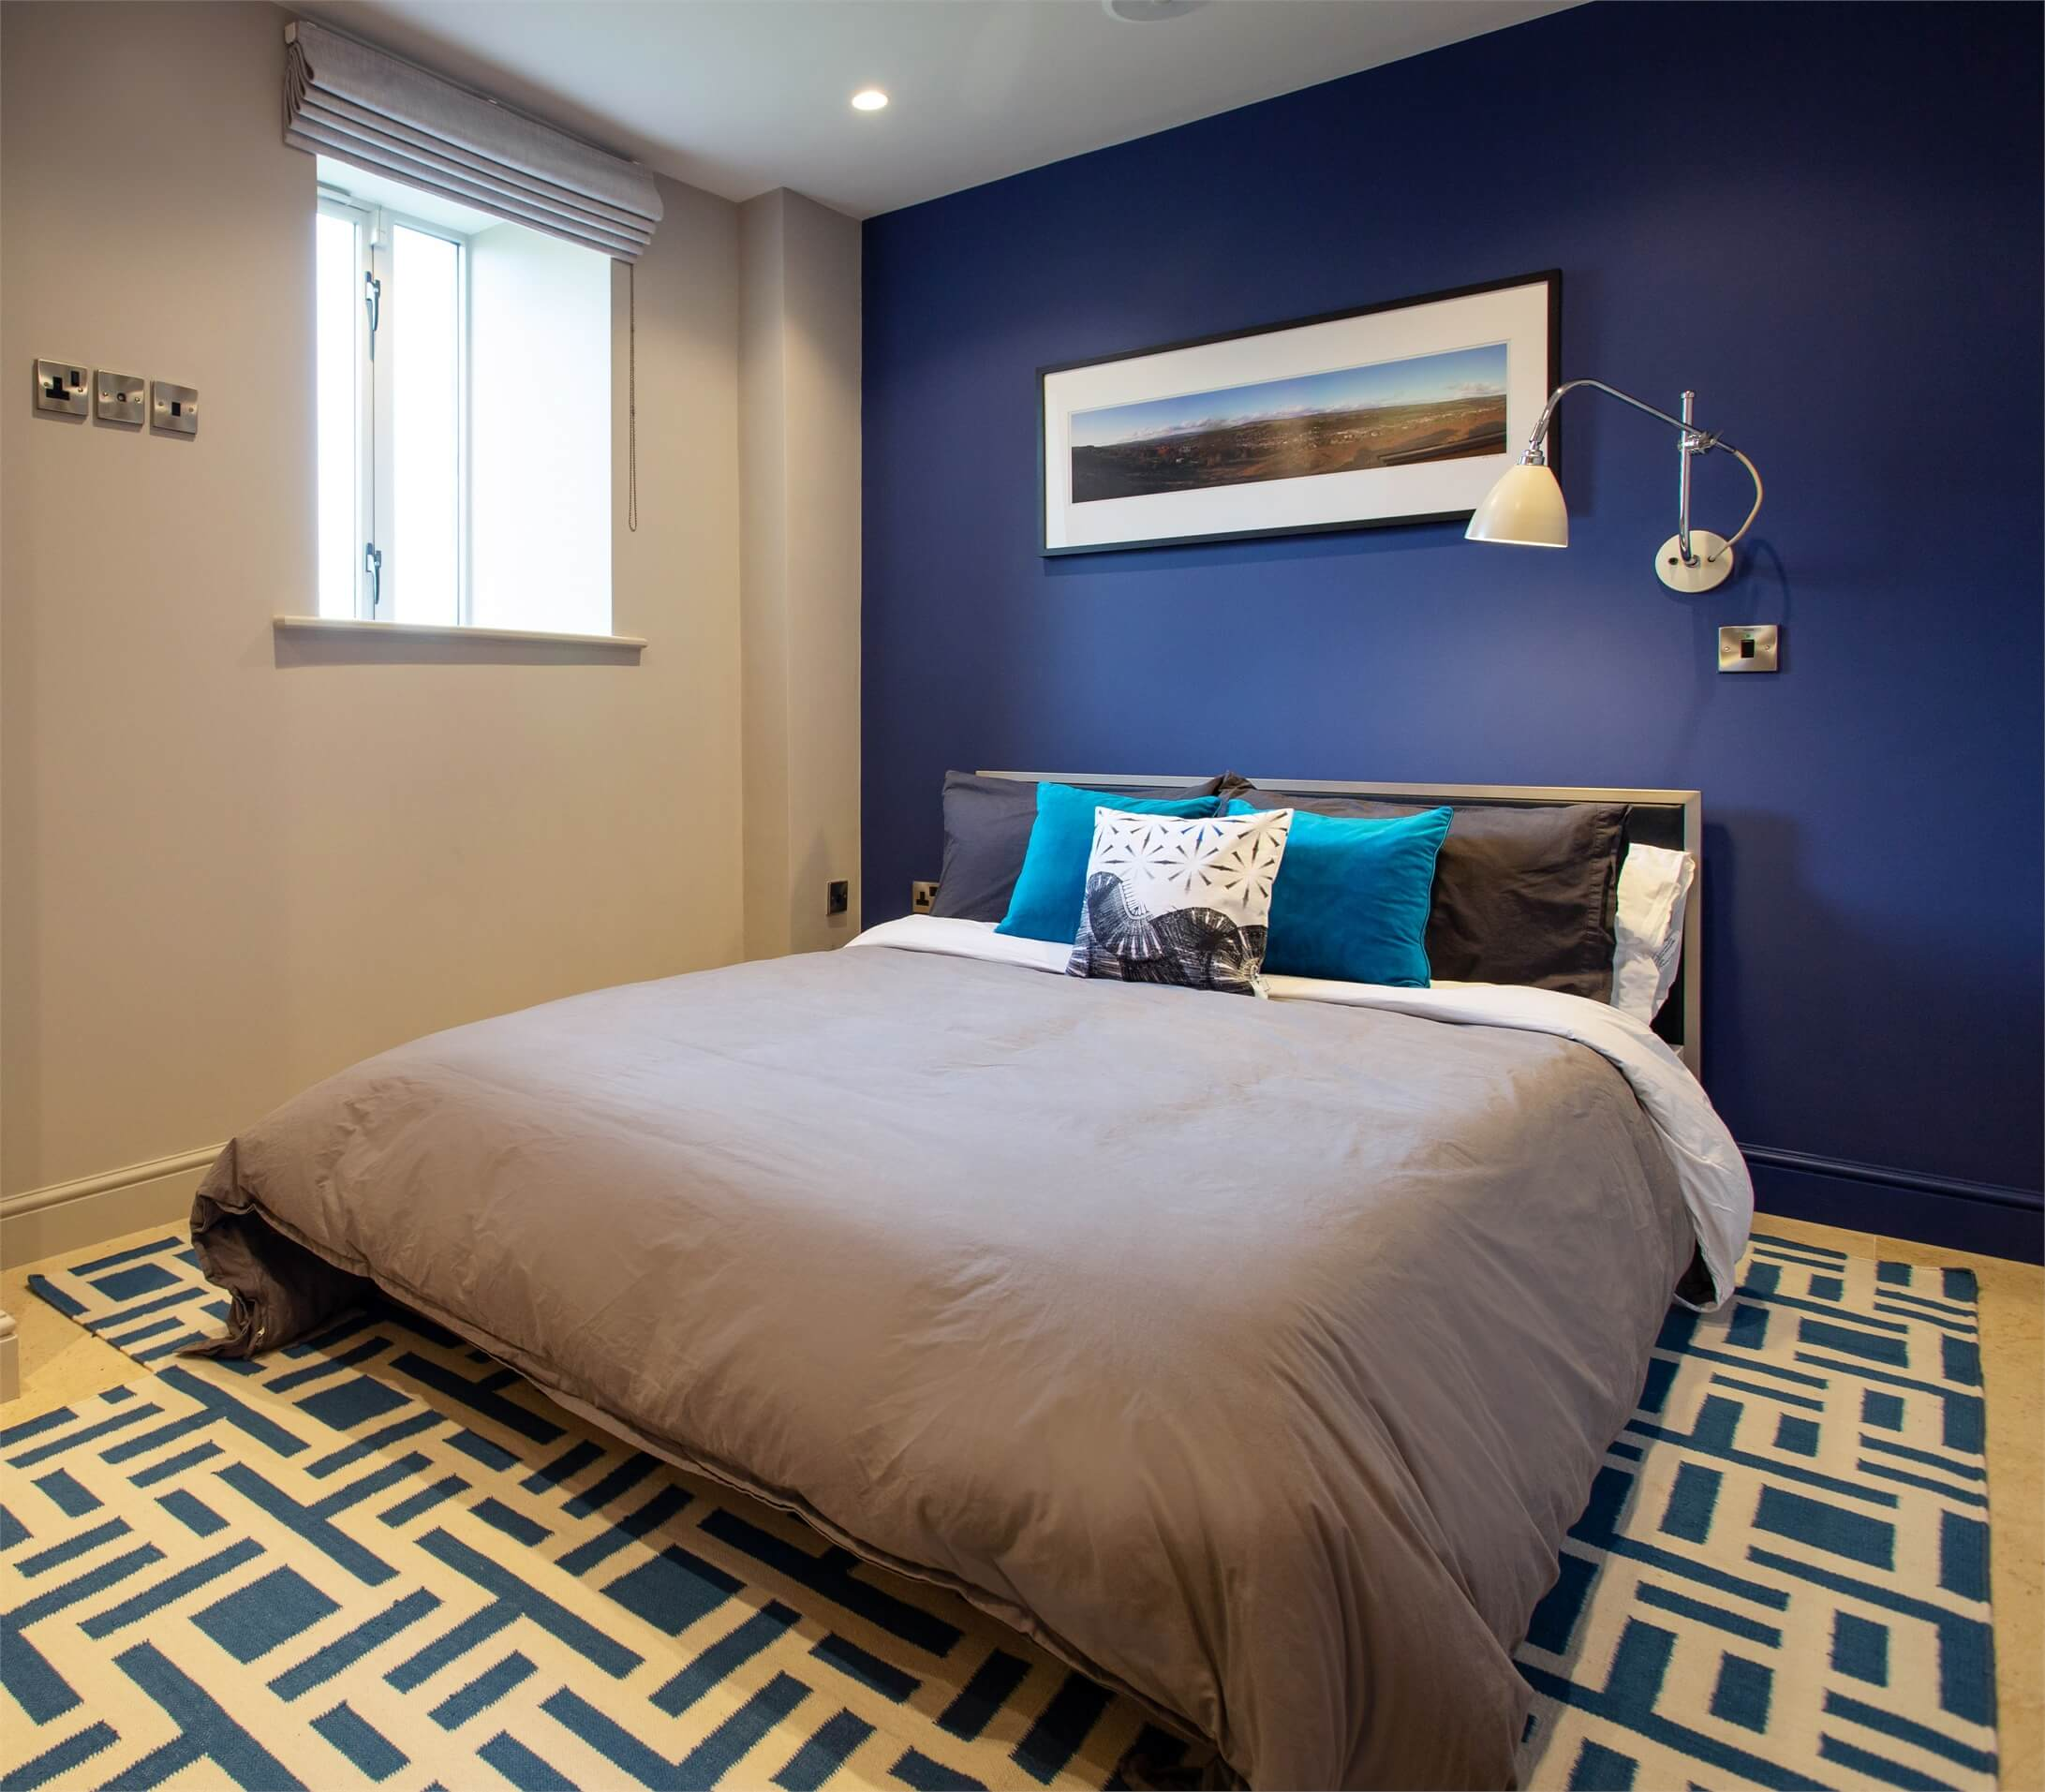 A bespoke Jennifer Manners rug adds interest to this spare bedroom